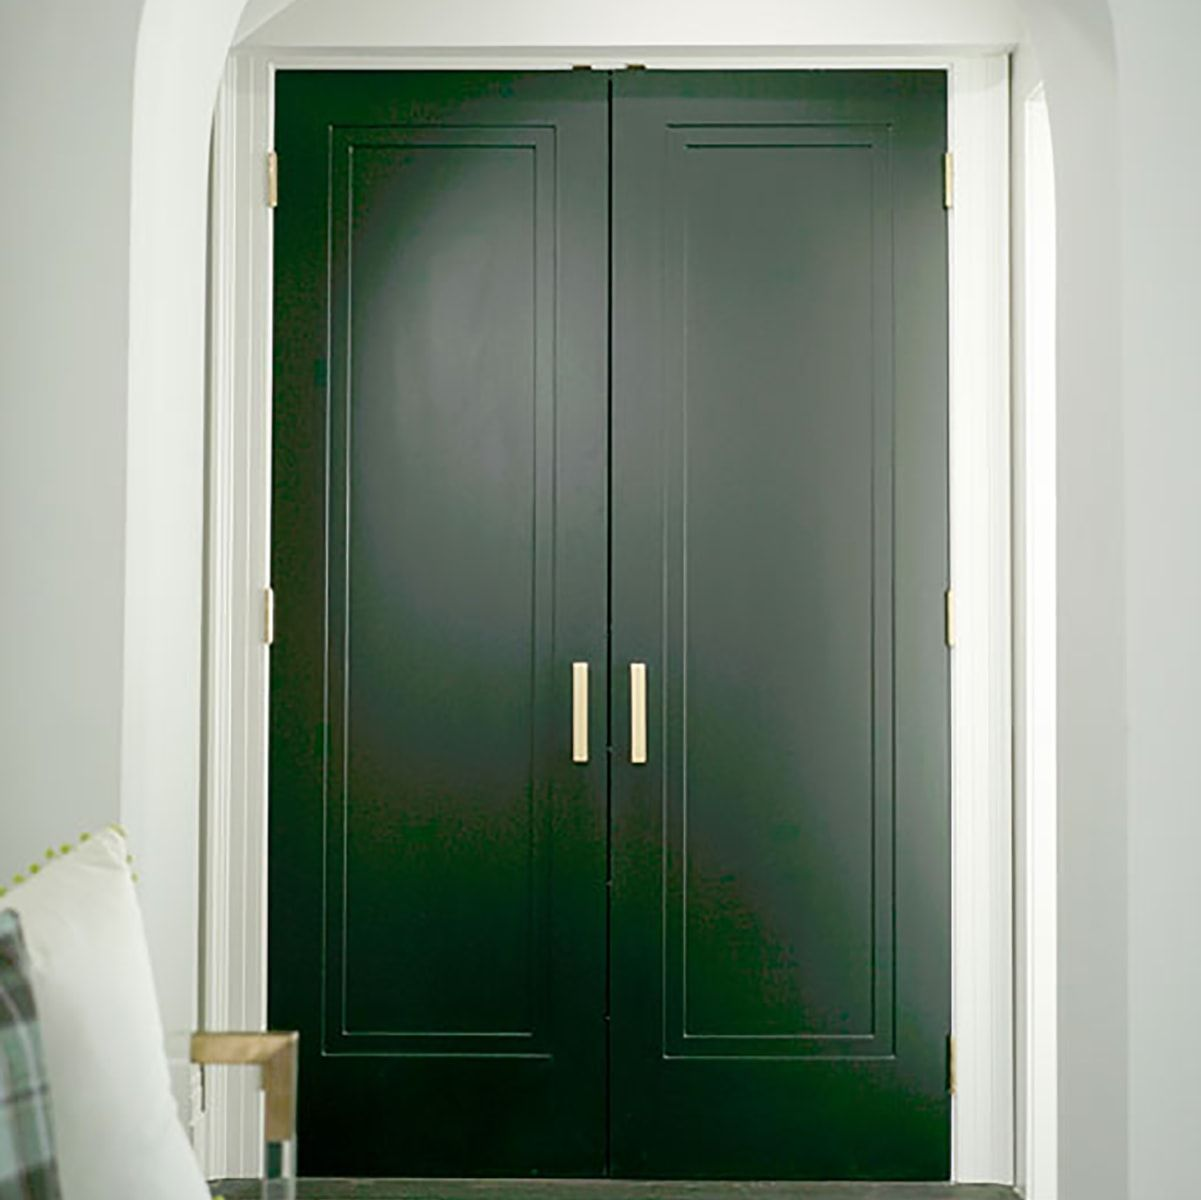 Trimlite 2068138 8491 Build Com Frosted Glass Interior Doors Doors Interior Black Interior Doors